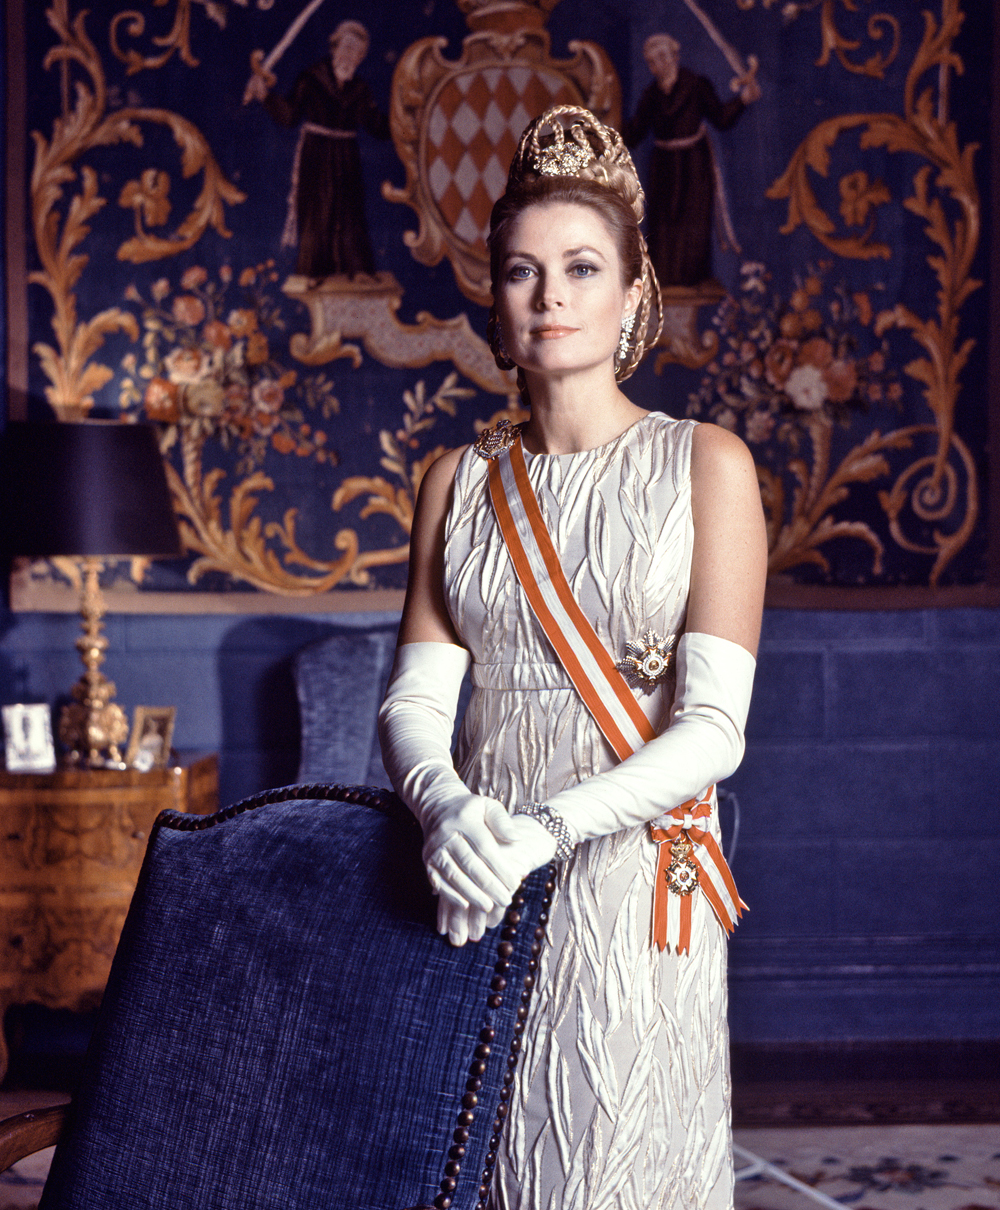 Princess Grace Kelly